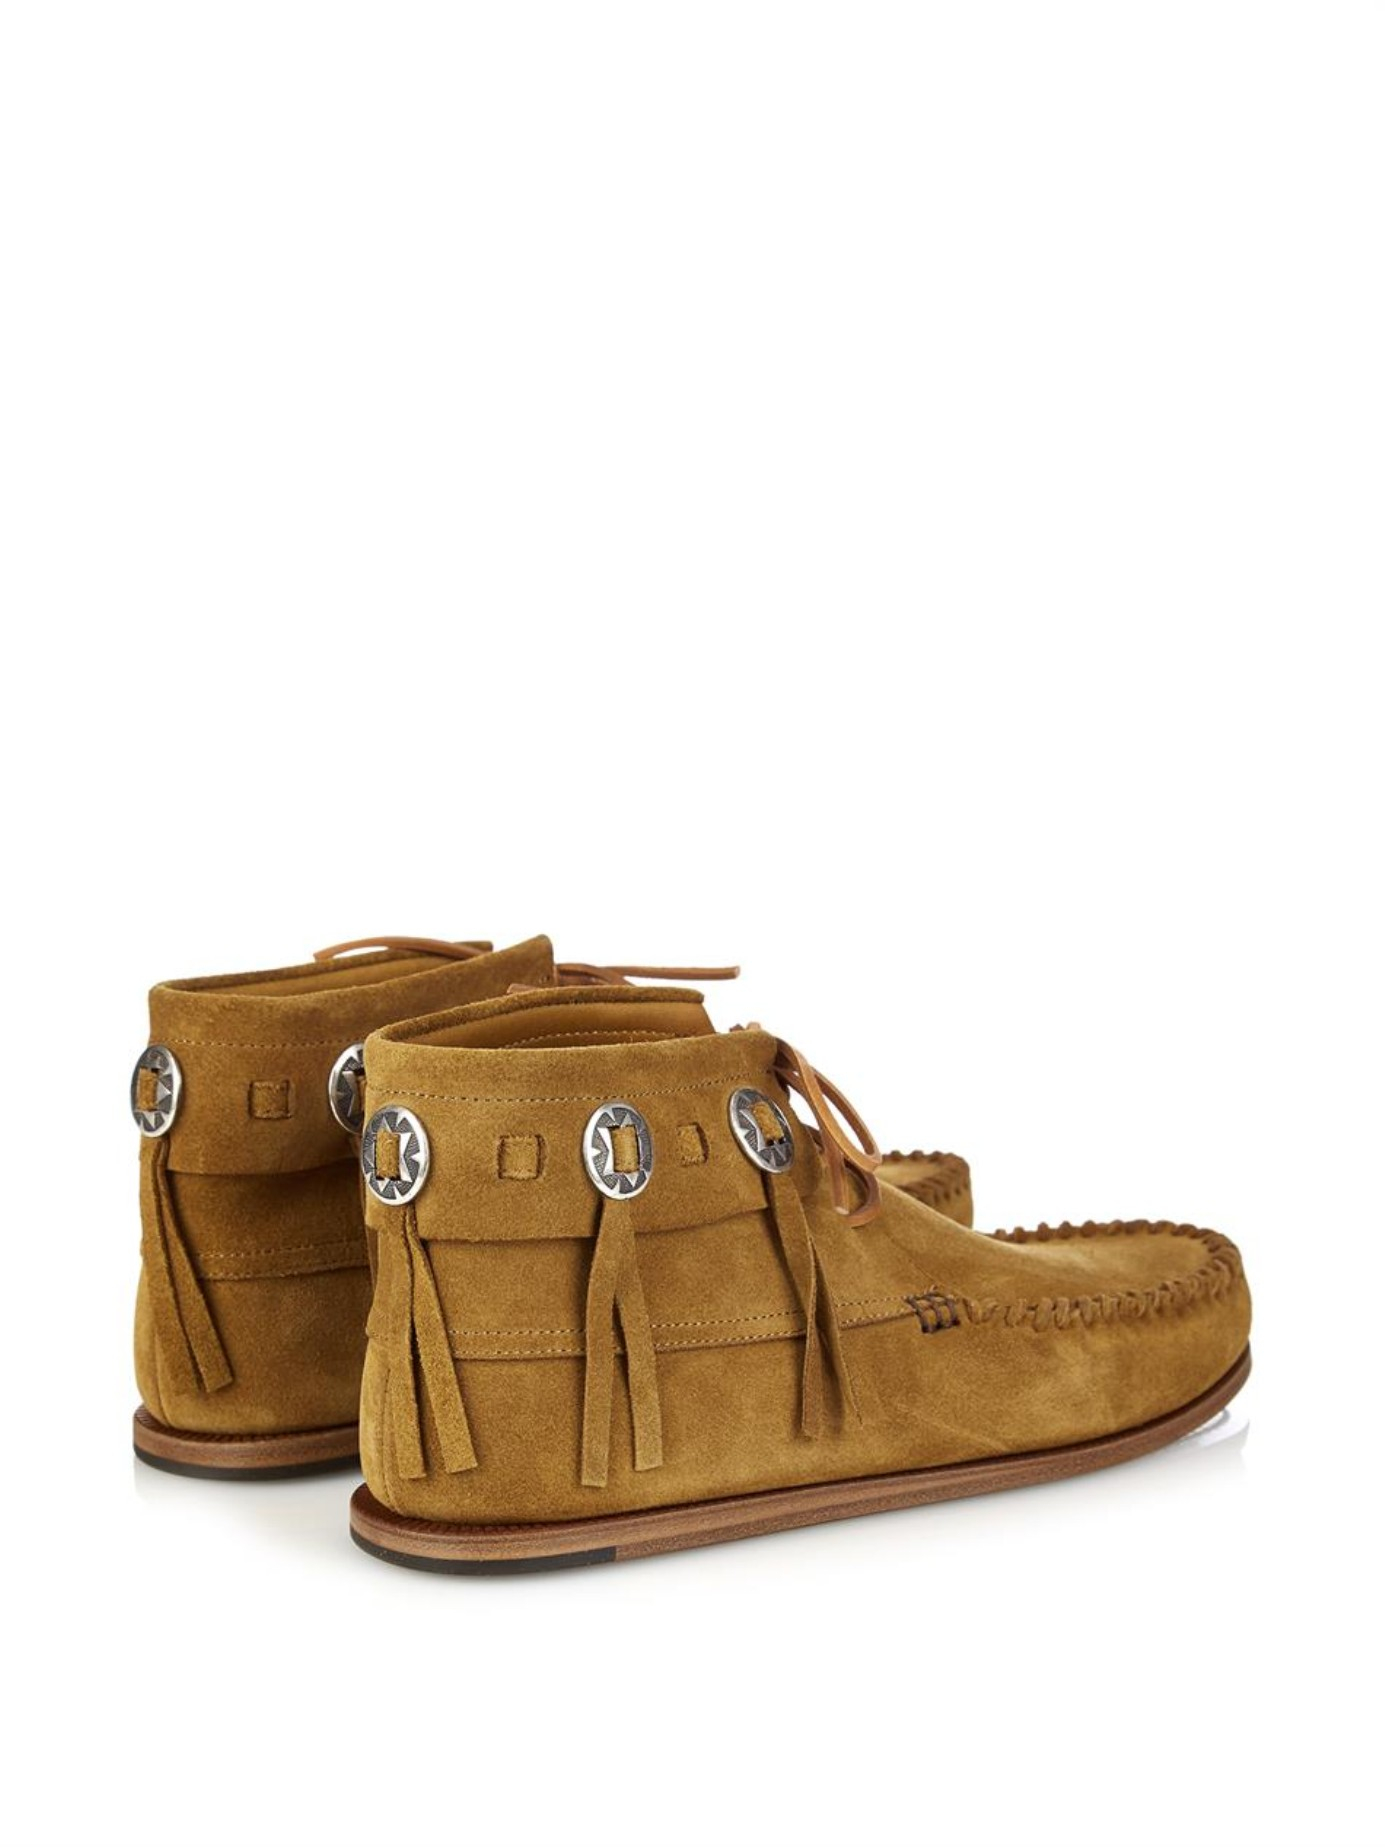 laurent concho suede moccasin ankle boots in brown